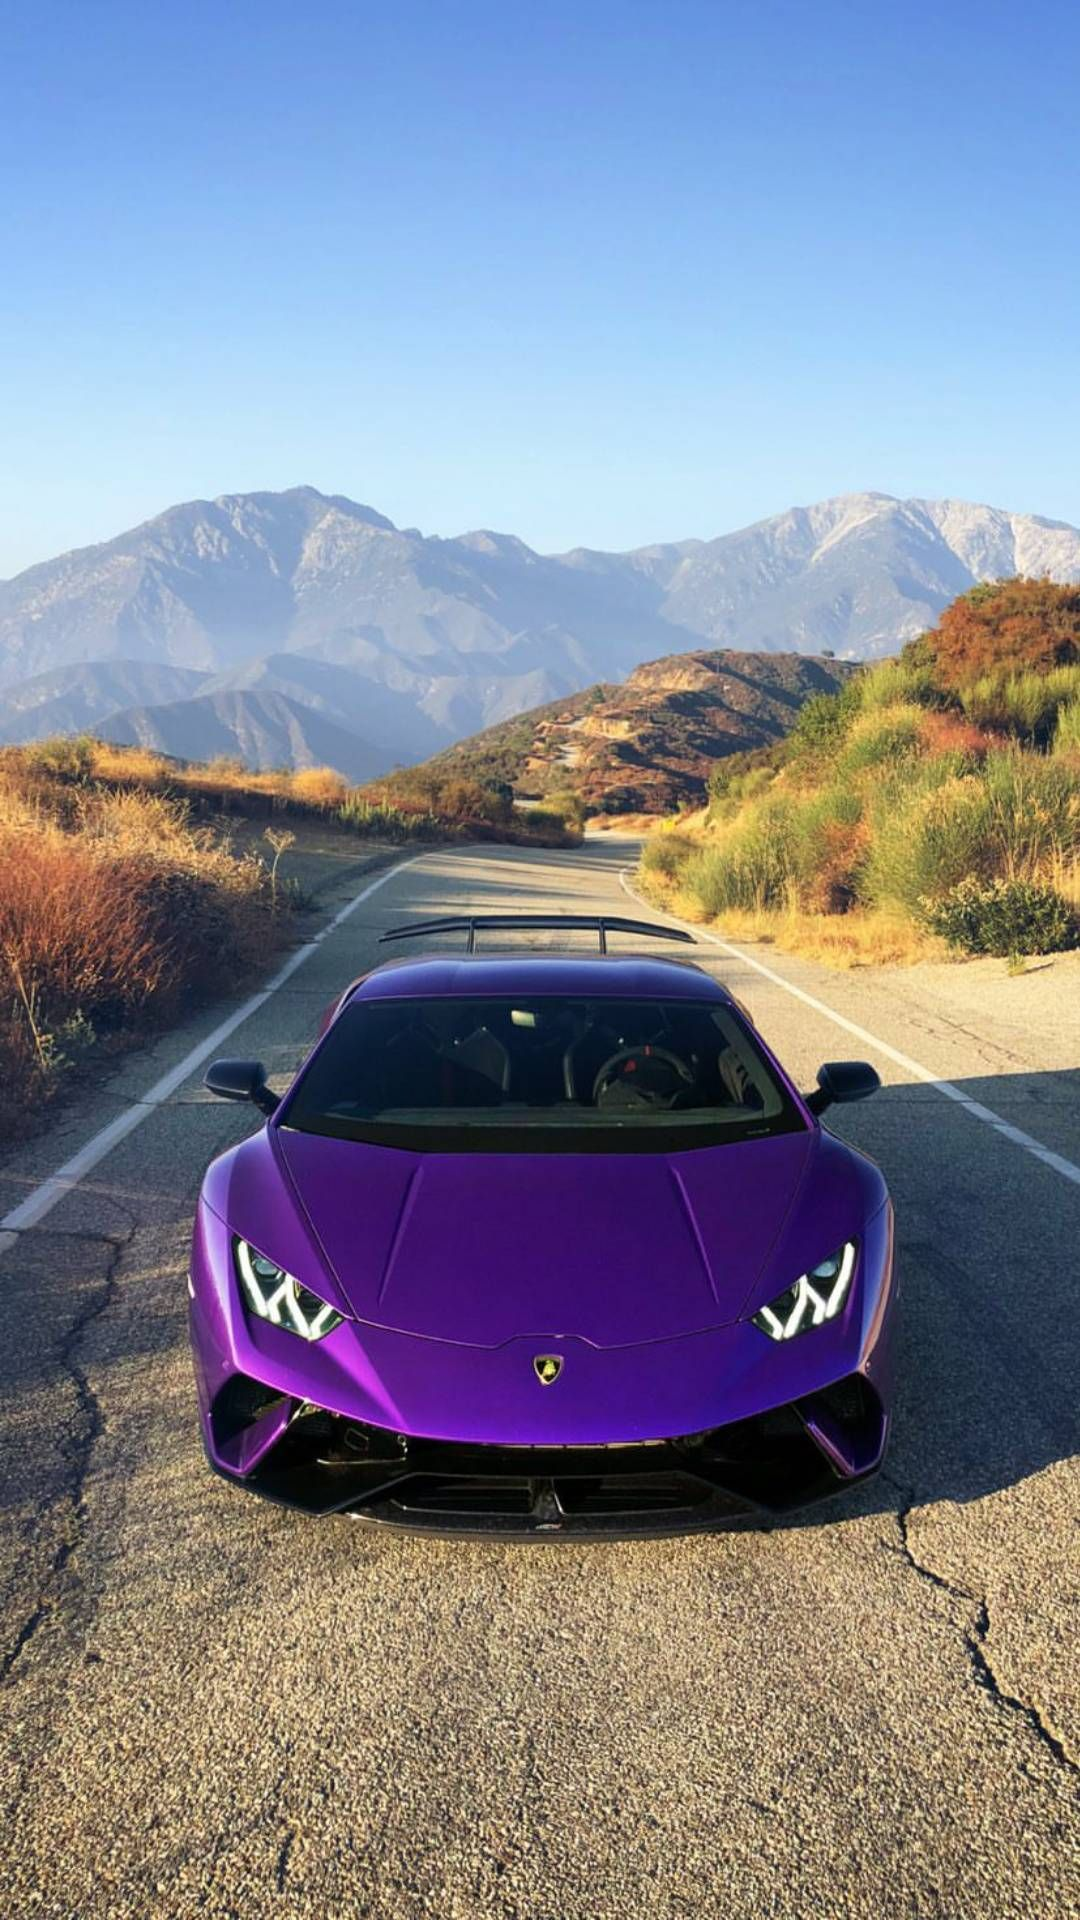 Purple Lambo Iphone Wallpaper Lamborghini Cars Luxury Cars Sports Car Wallpaper